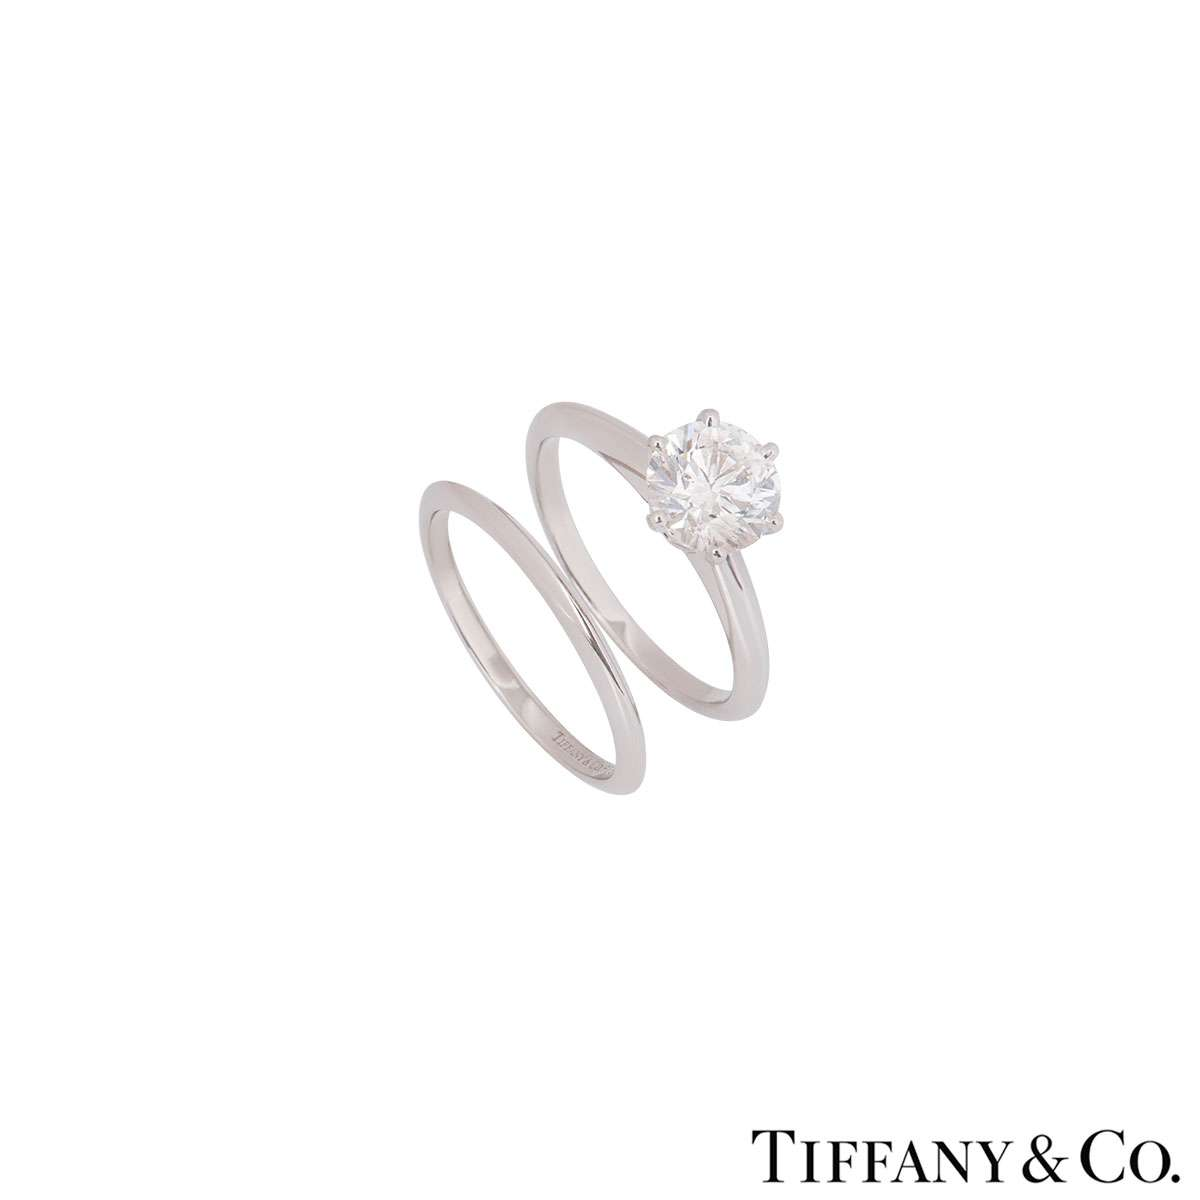 406142d61 Tiffany & Co. Platinum Diamond Ring 1.71ct I/VVS1 With Plain ...